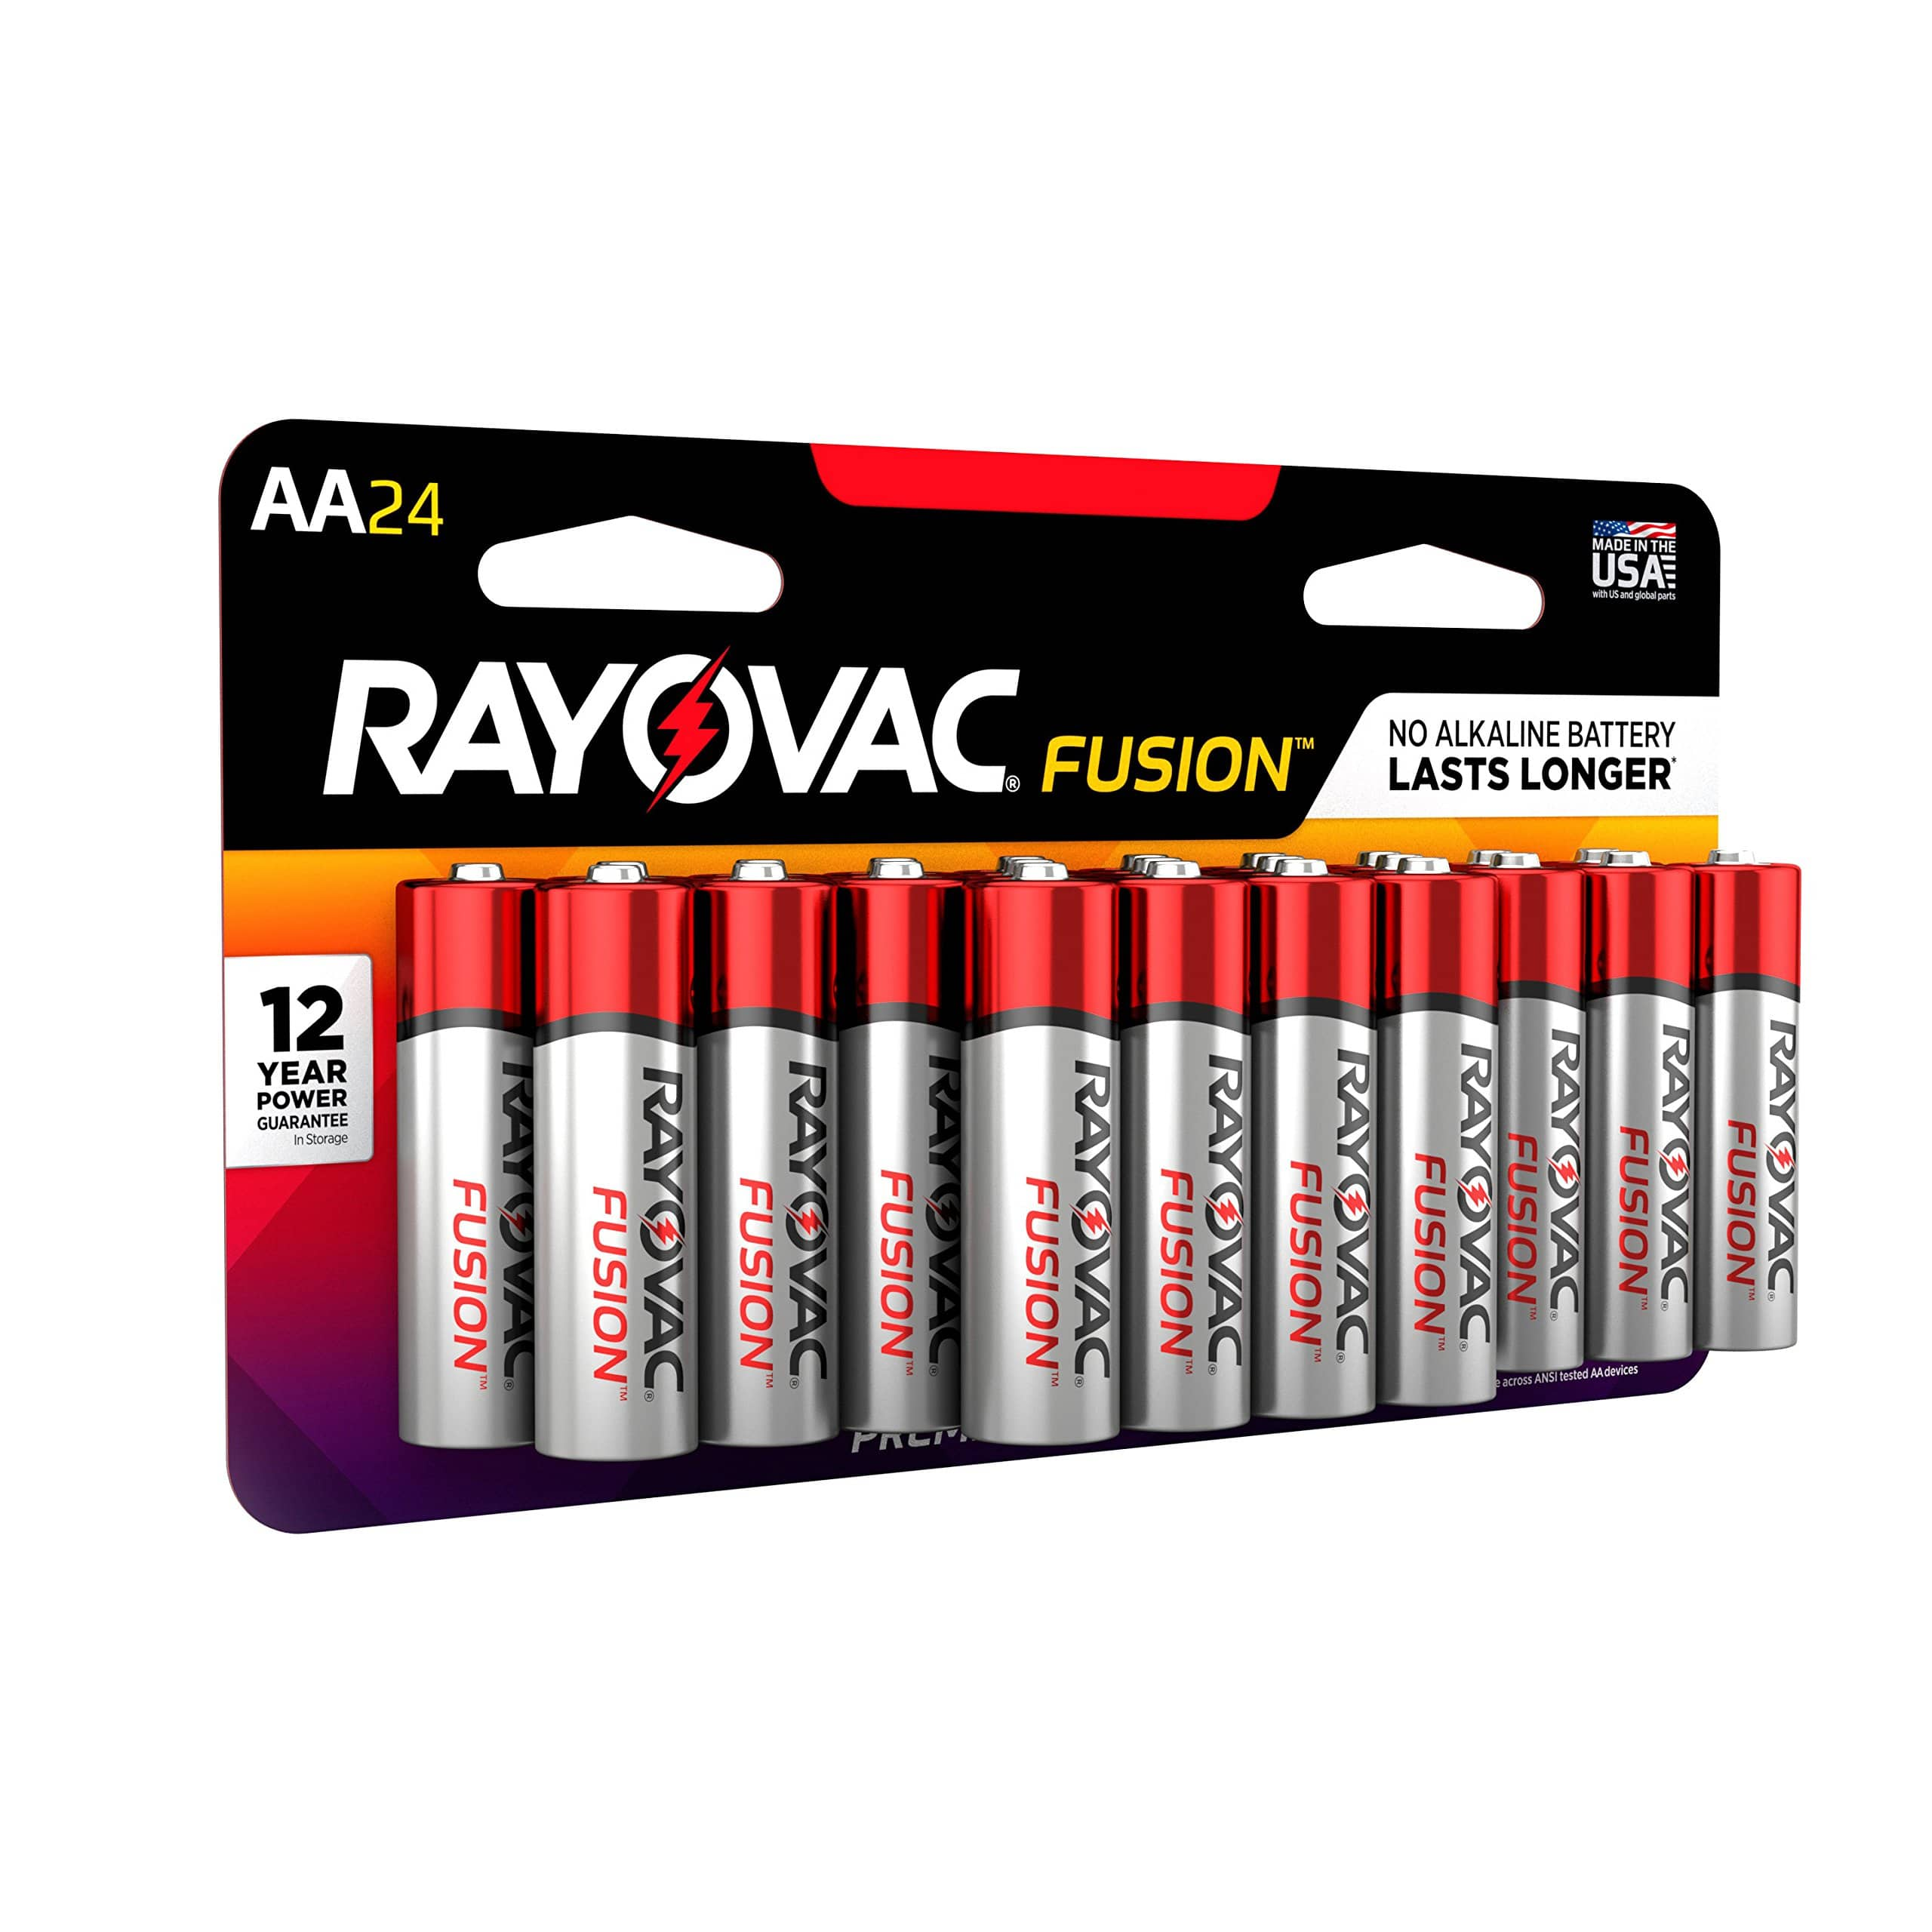 RAYOVAC AAA 24-Pack FUSION Premium Alkaline Batteries reduced price  $5.41 ($0.23 / Count)  @amazon as add-on item